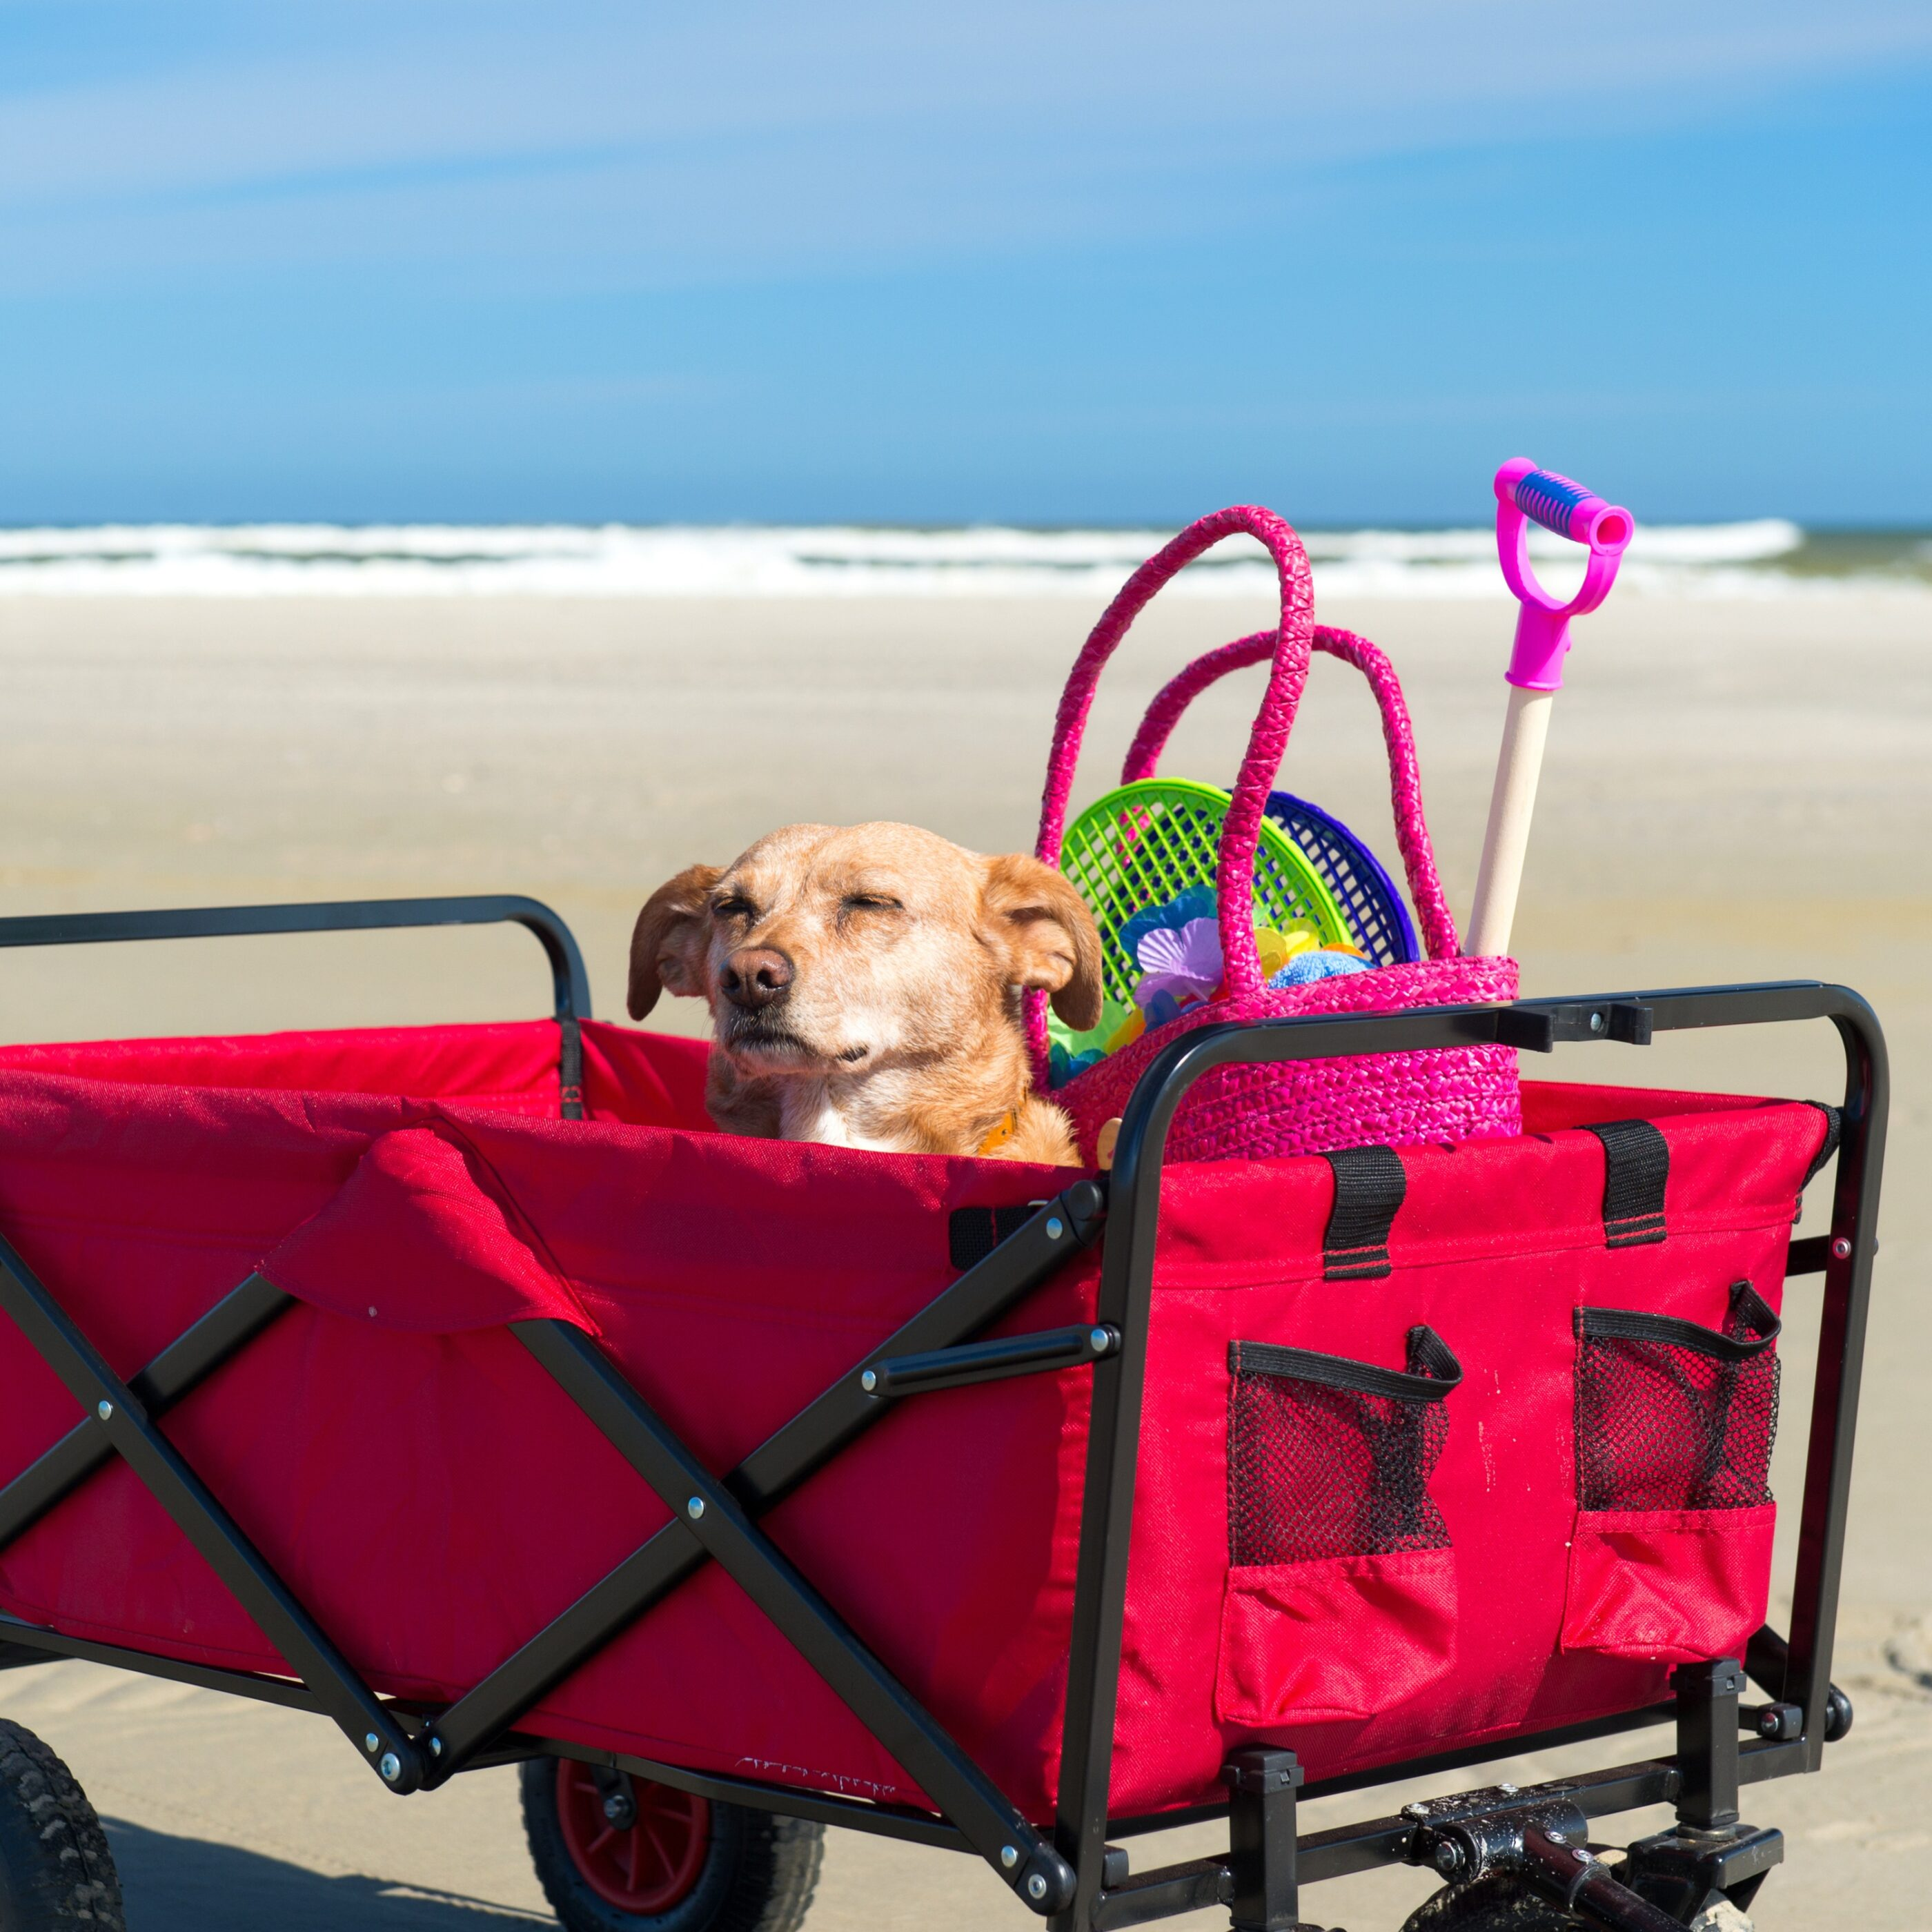 See the best beach gear from toys to crazy cool gadgets that you didn't know you needed.